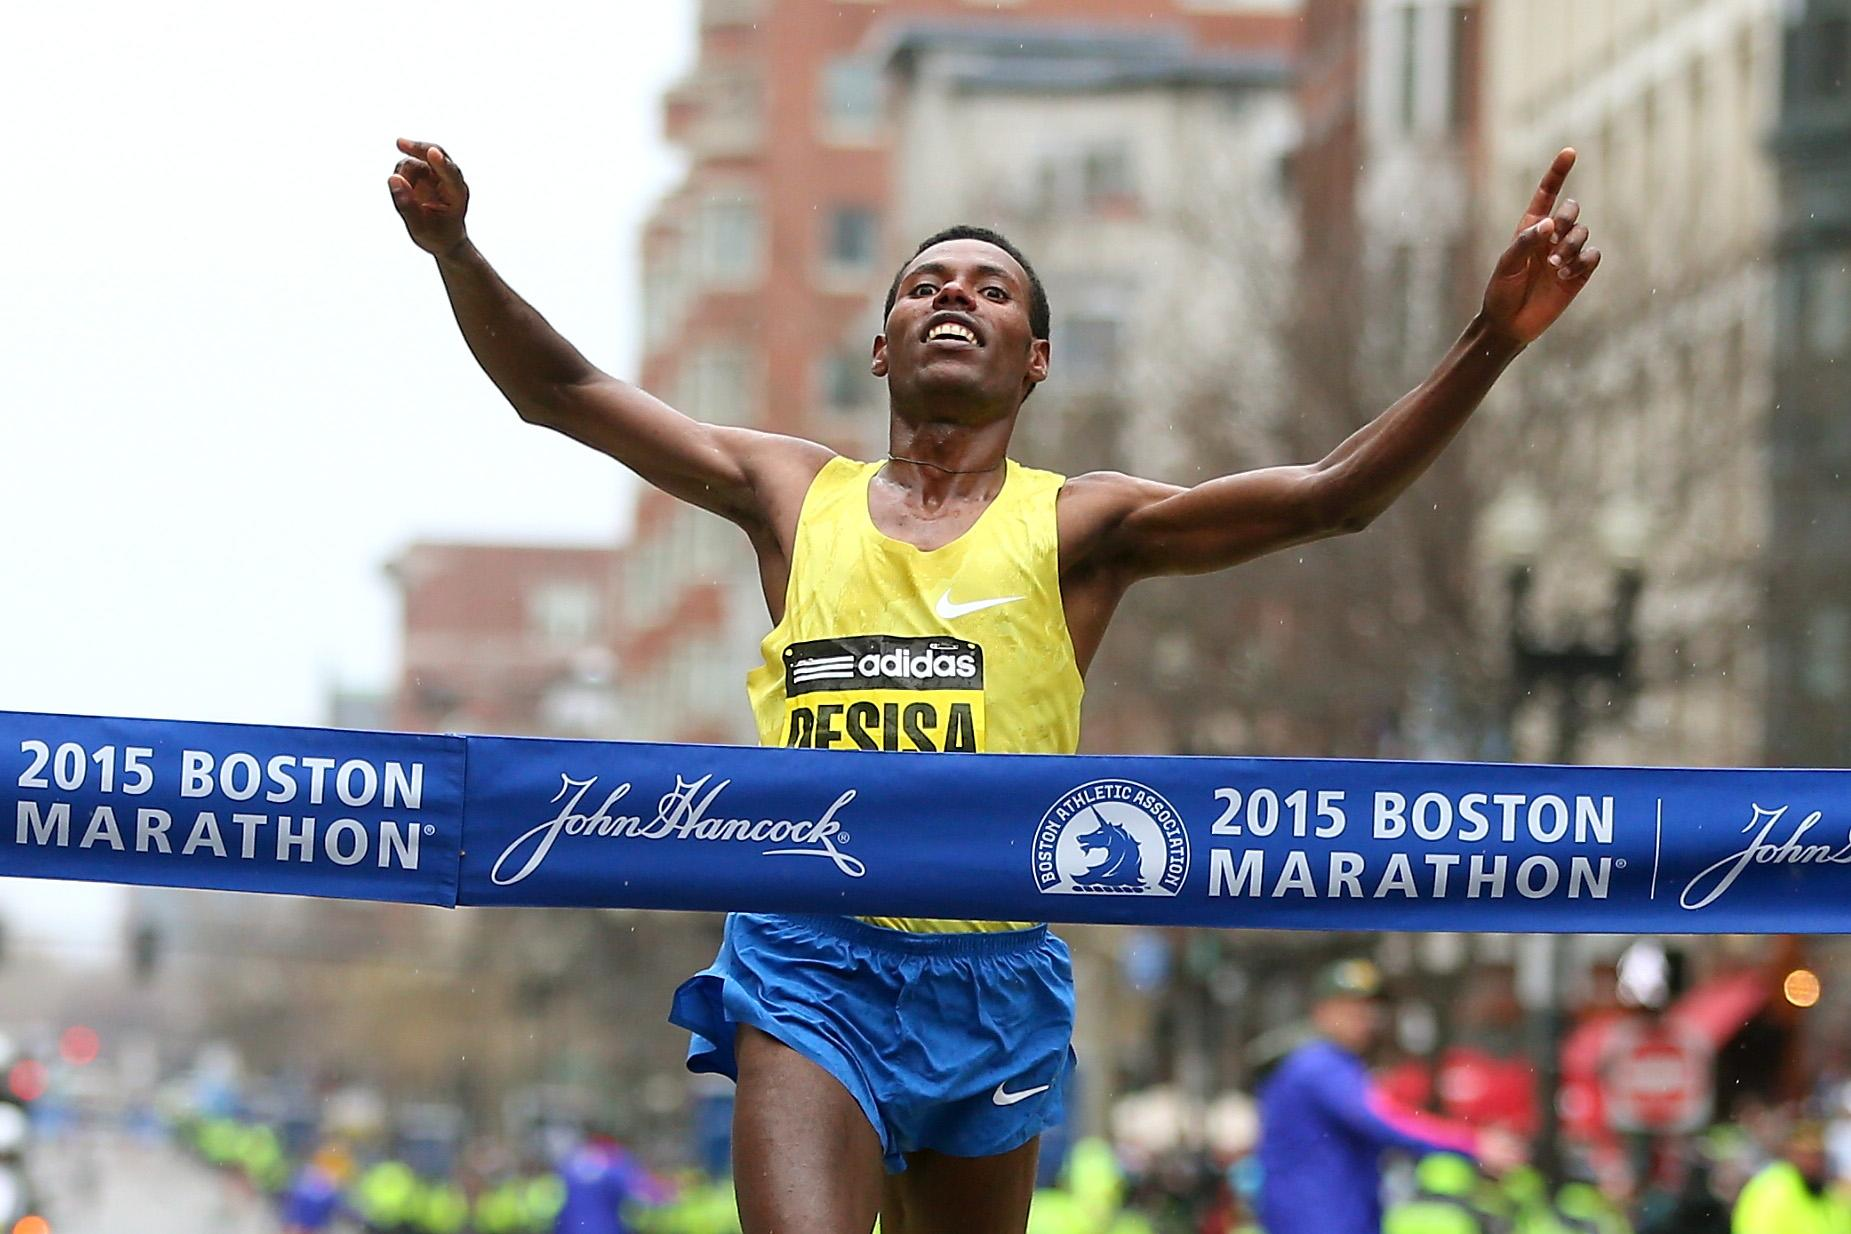 Desisa wins second Boston Marathon crown